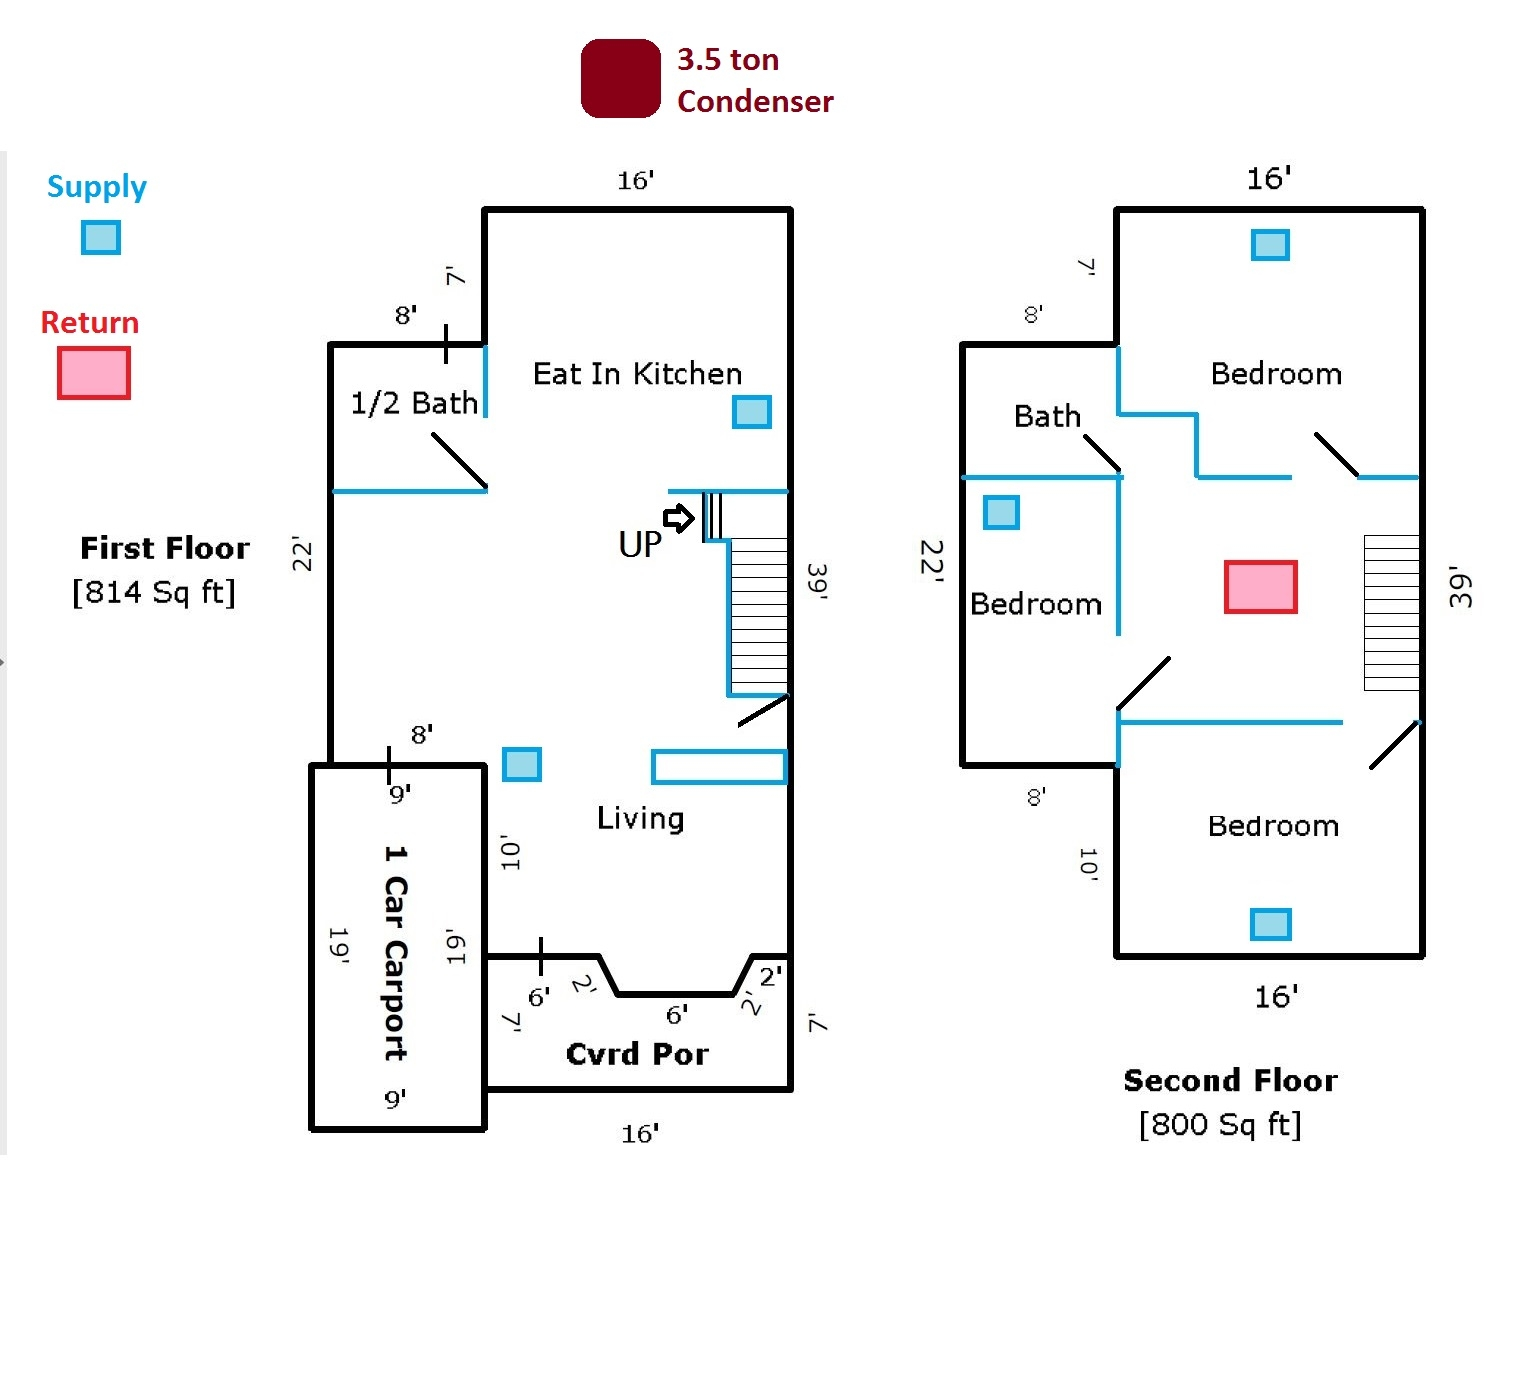 Split Ac Wiring Auto Electrical Diagram Schematic With Weatherproof Fuse Box Ductless Mini System Riser Parts